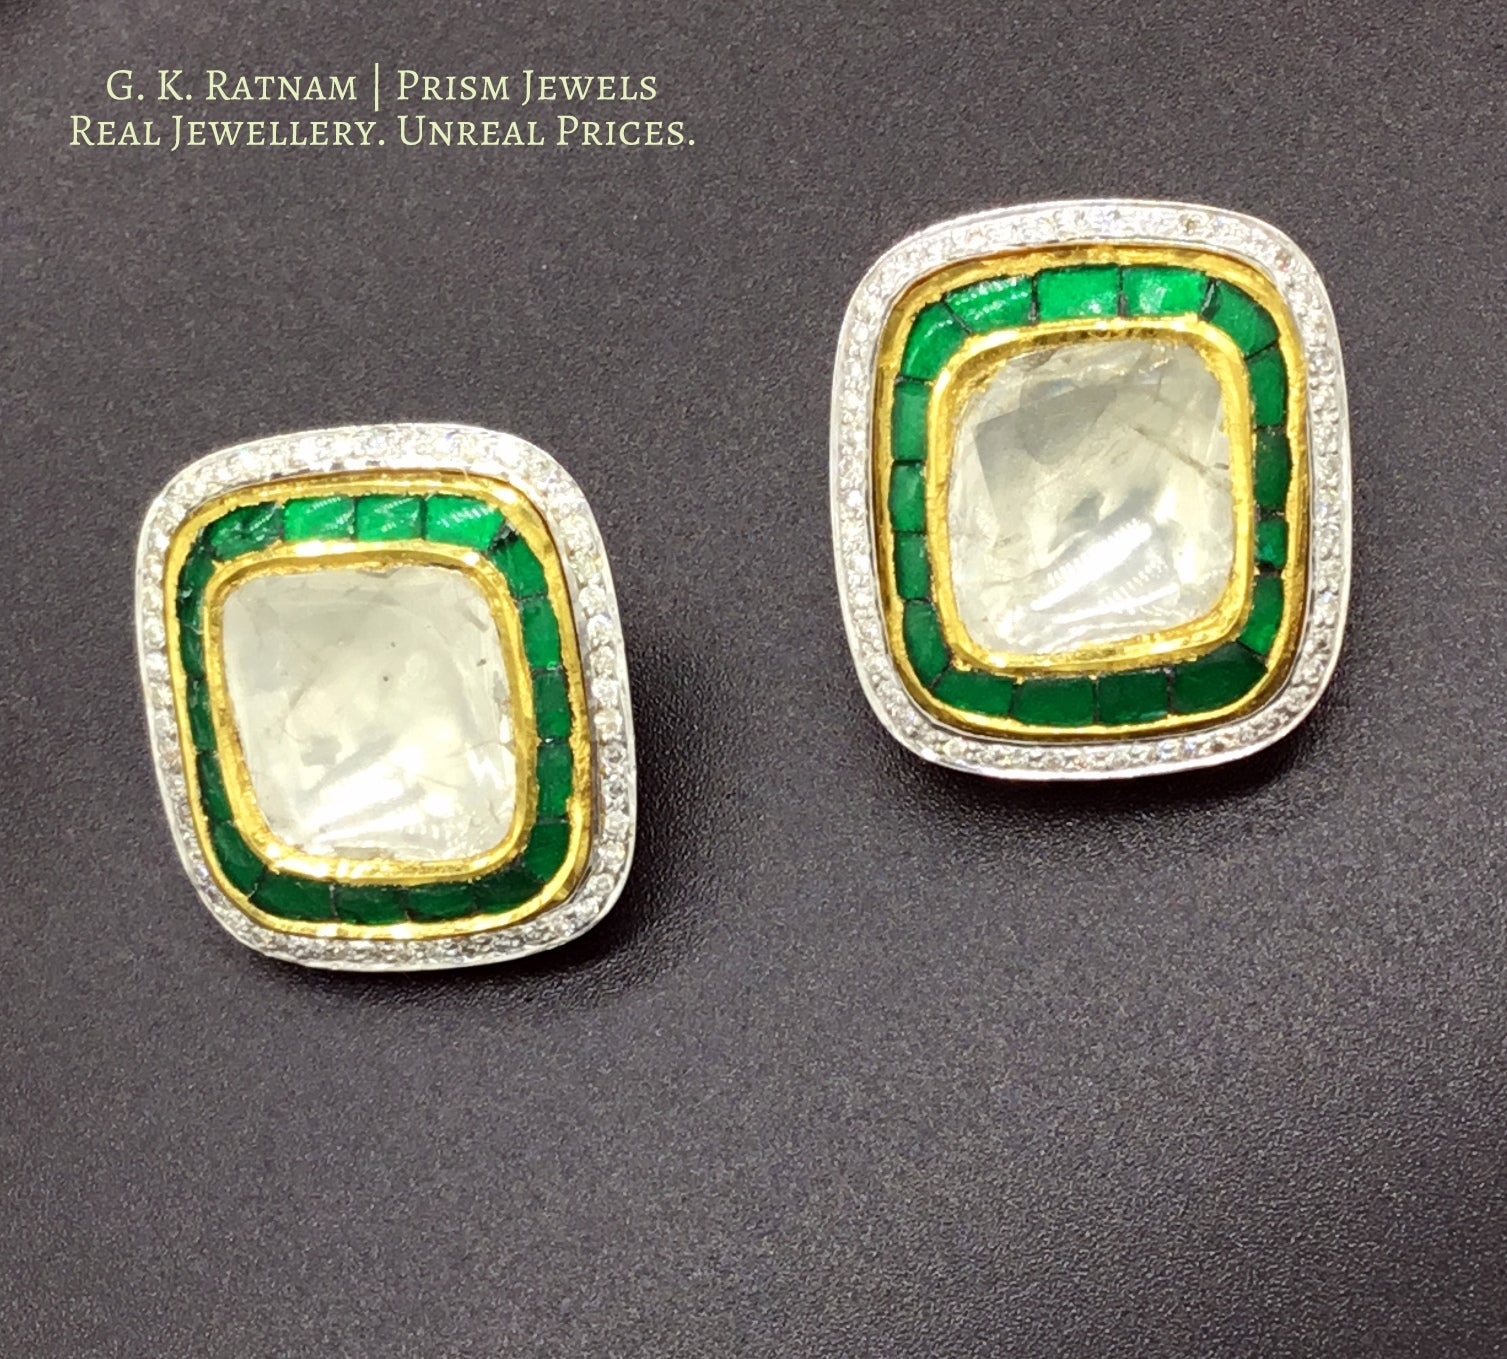 18k Gold and Diamond Polki Tops / Studs Earring Pair with big uncuts and emerald-green stones - gold diamond polki kundan meena jadau jewellery